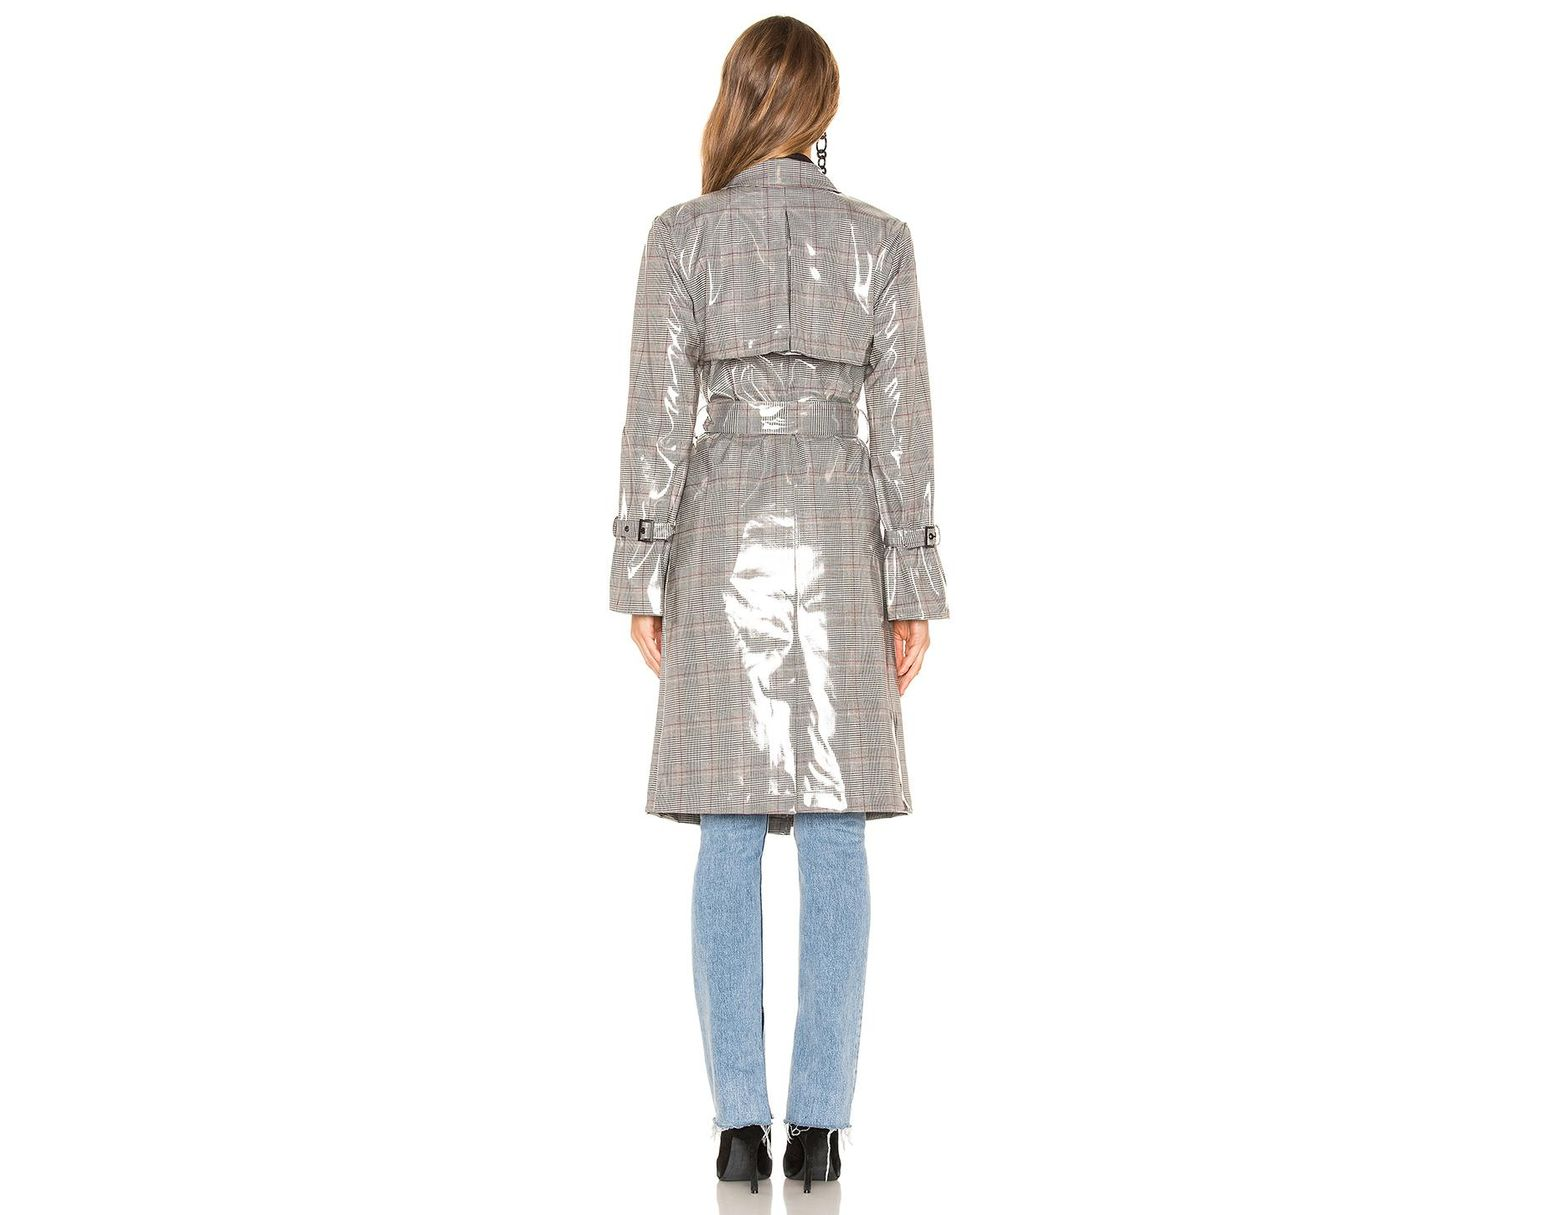 562b5027dab8e LPA Vinyl Trench Coat in Gray - Lyst